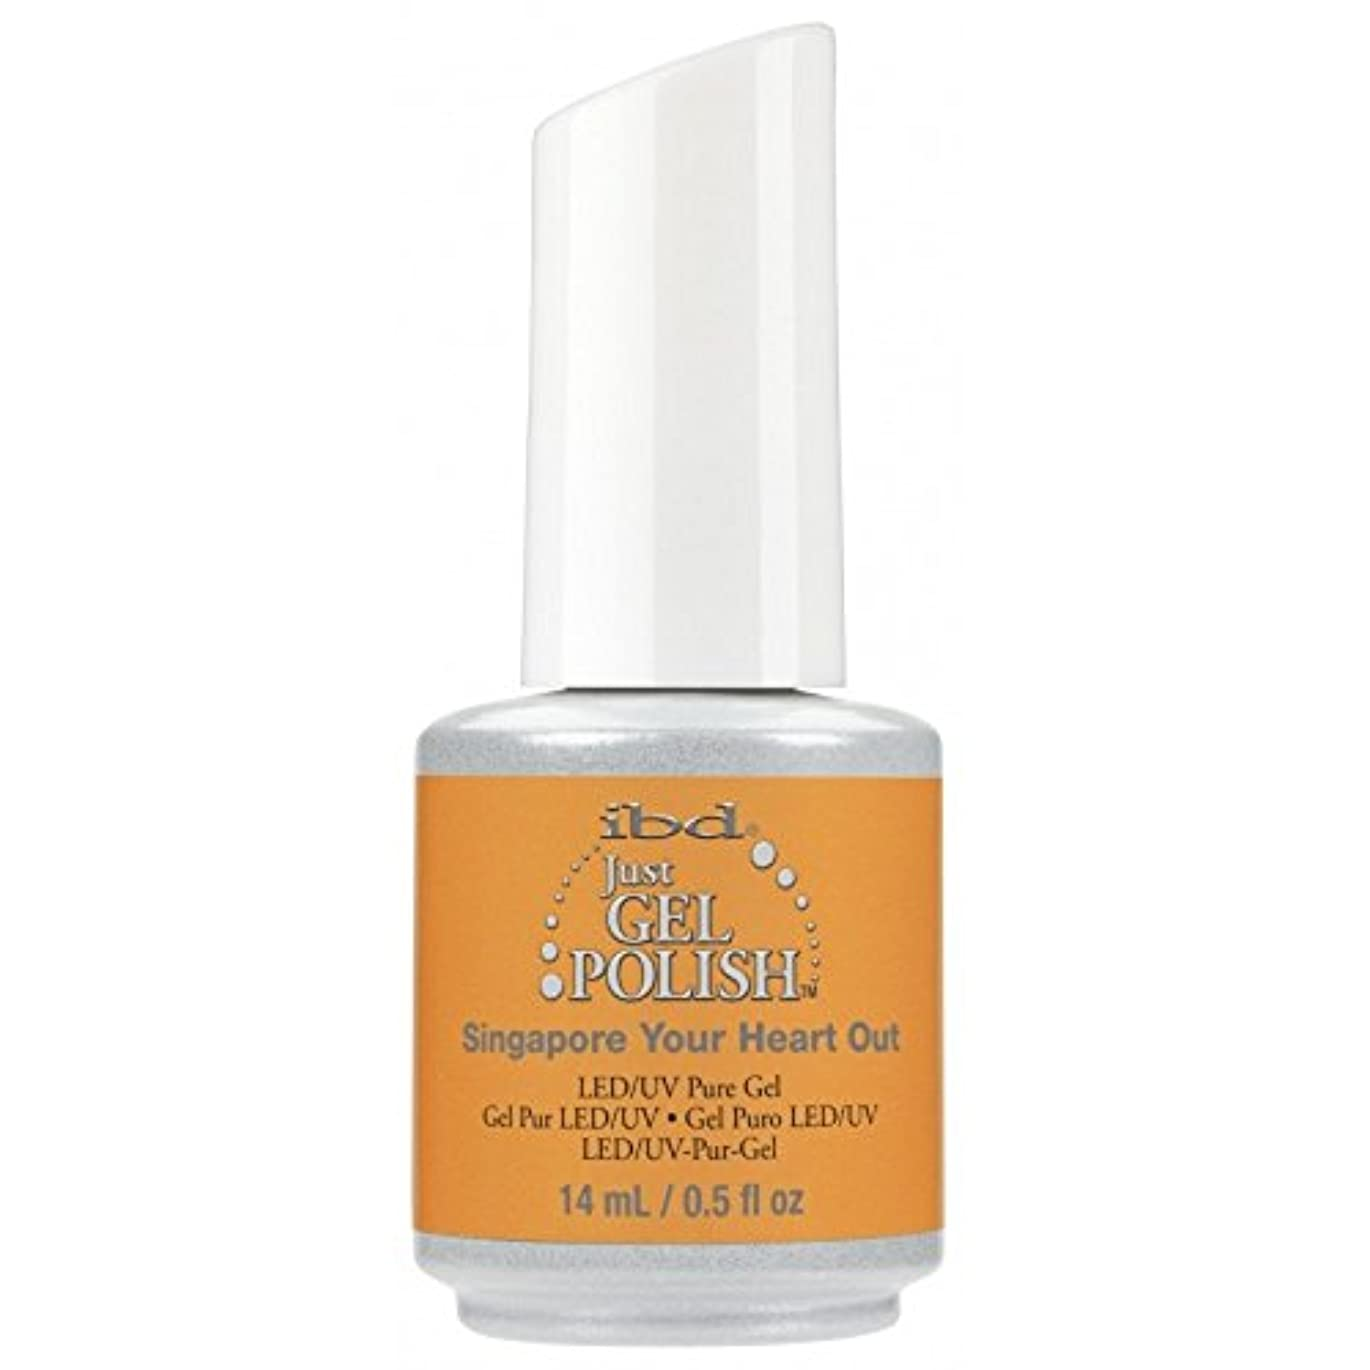 ゴージャスゲージ墓ibd Just Gel Nail Polish - Summer 2017 Destination Colour Collection - Singapore Your Heart Out - 14ml / 0.5oz